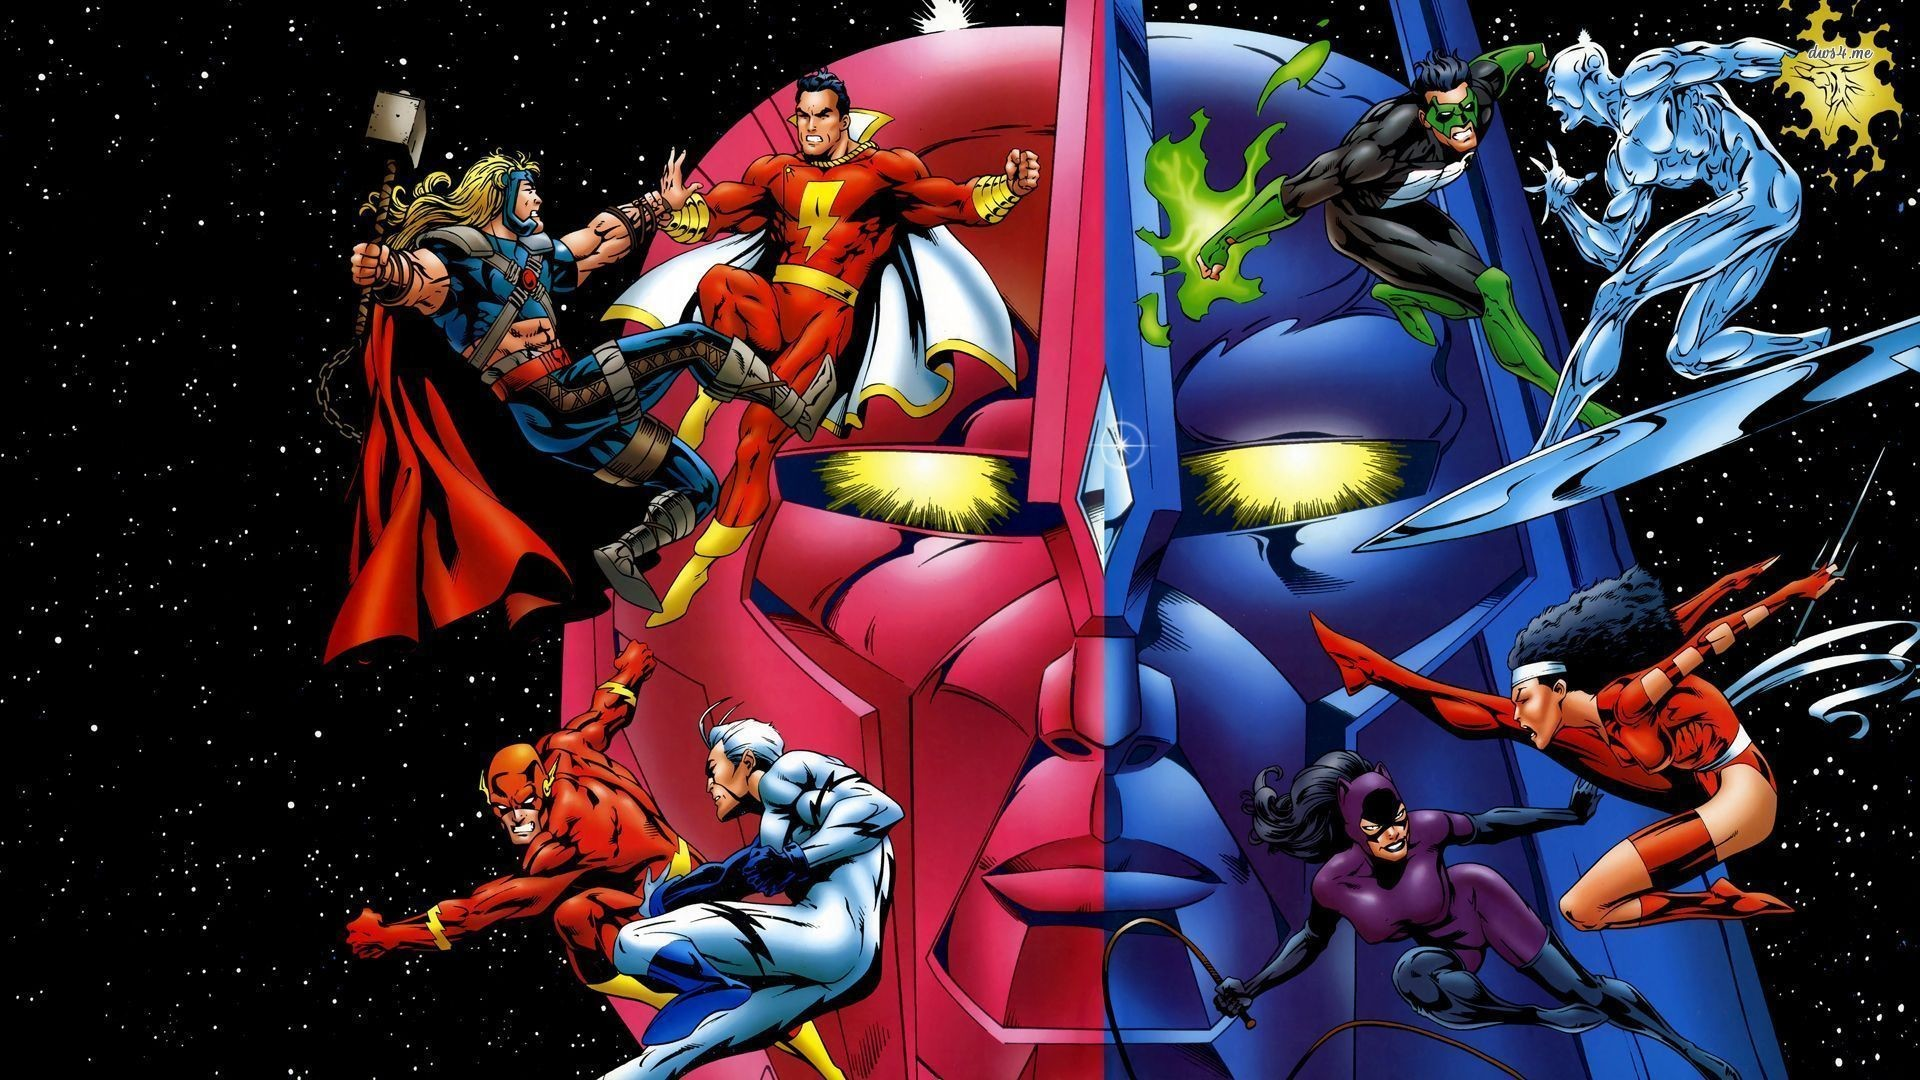 Res: 1920x1080, By Virgen Kreiger V.861: Amazing DC Superheroes Pictures & Backgrounds